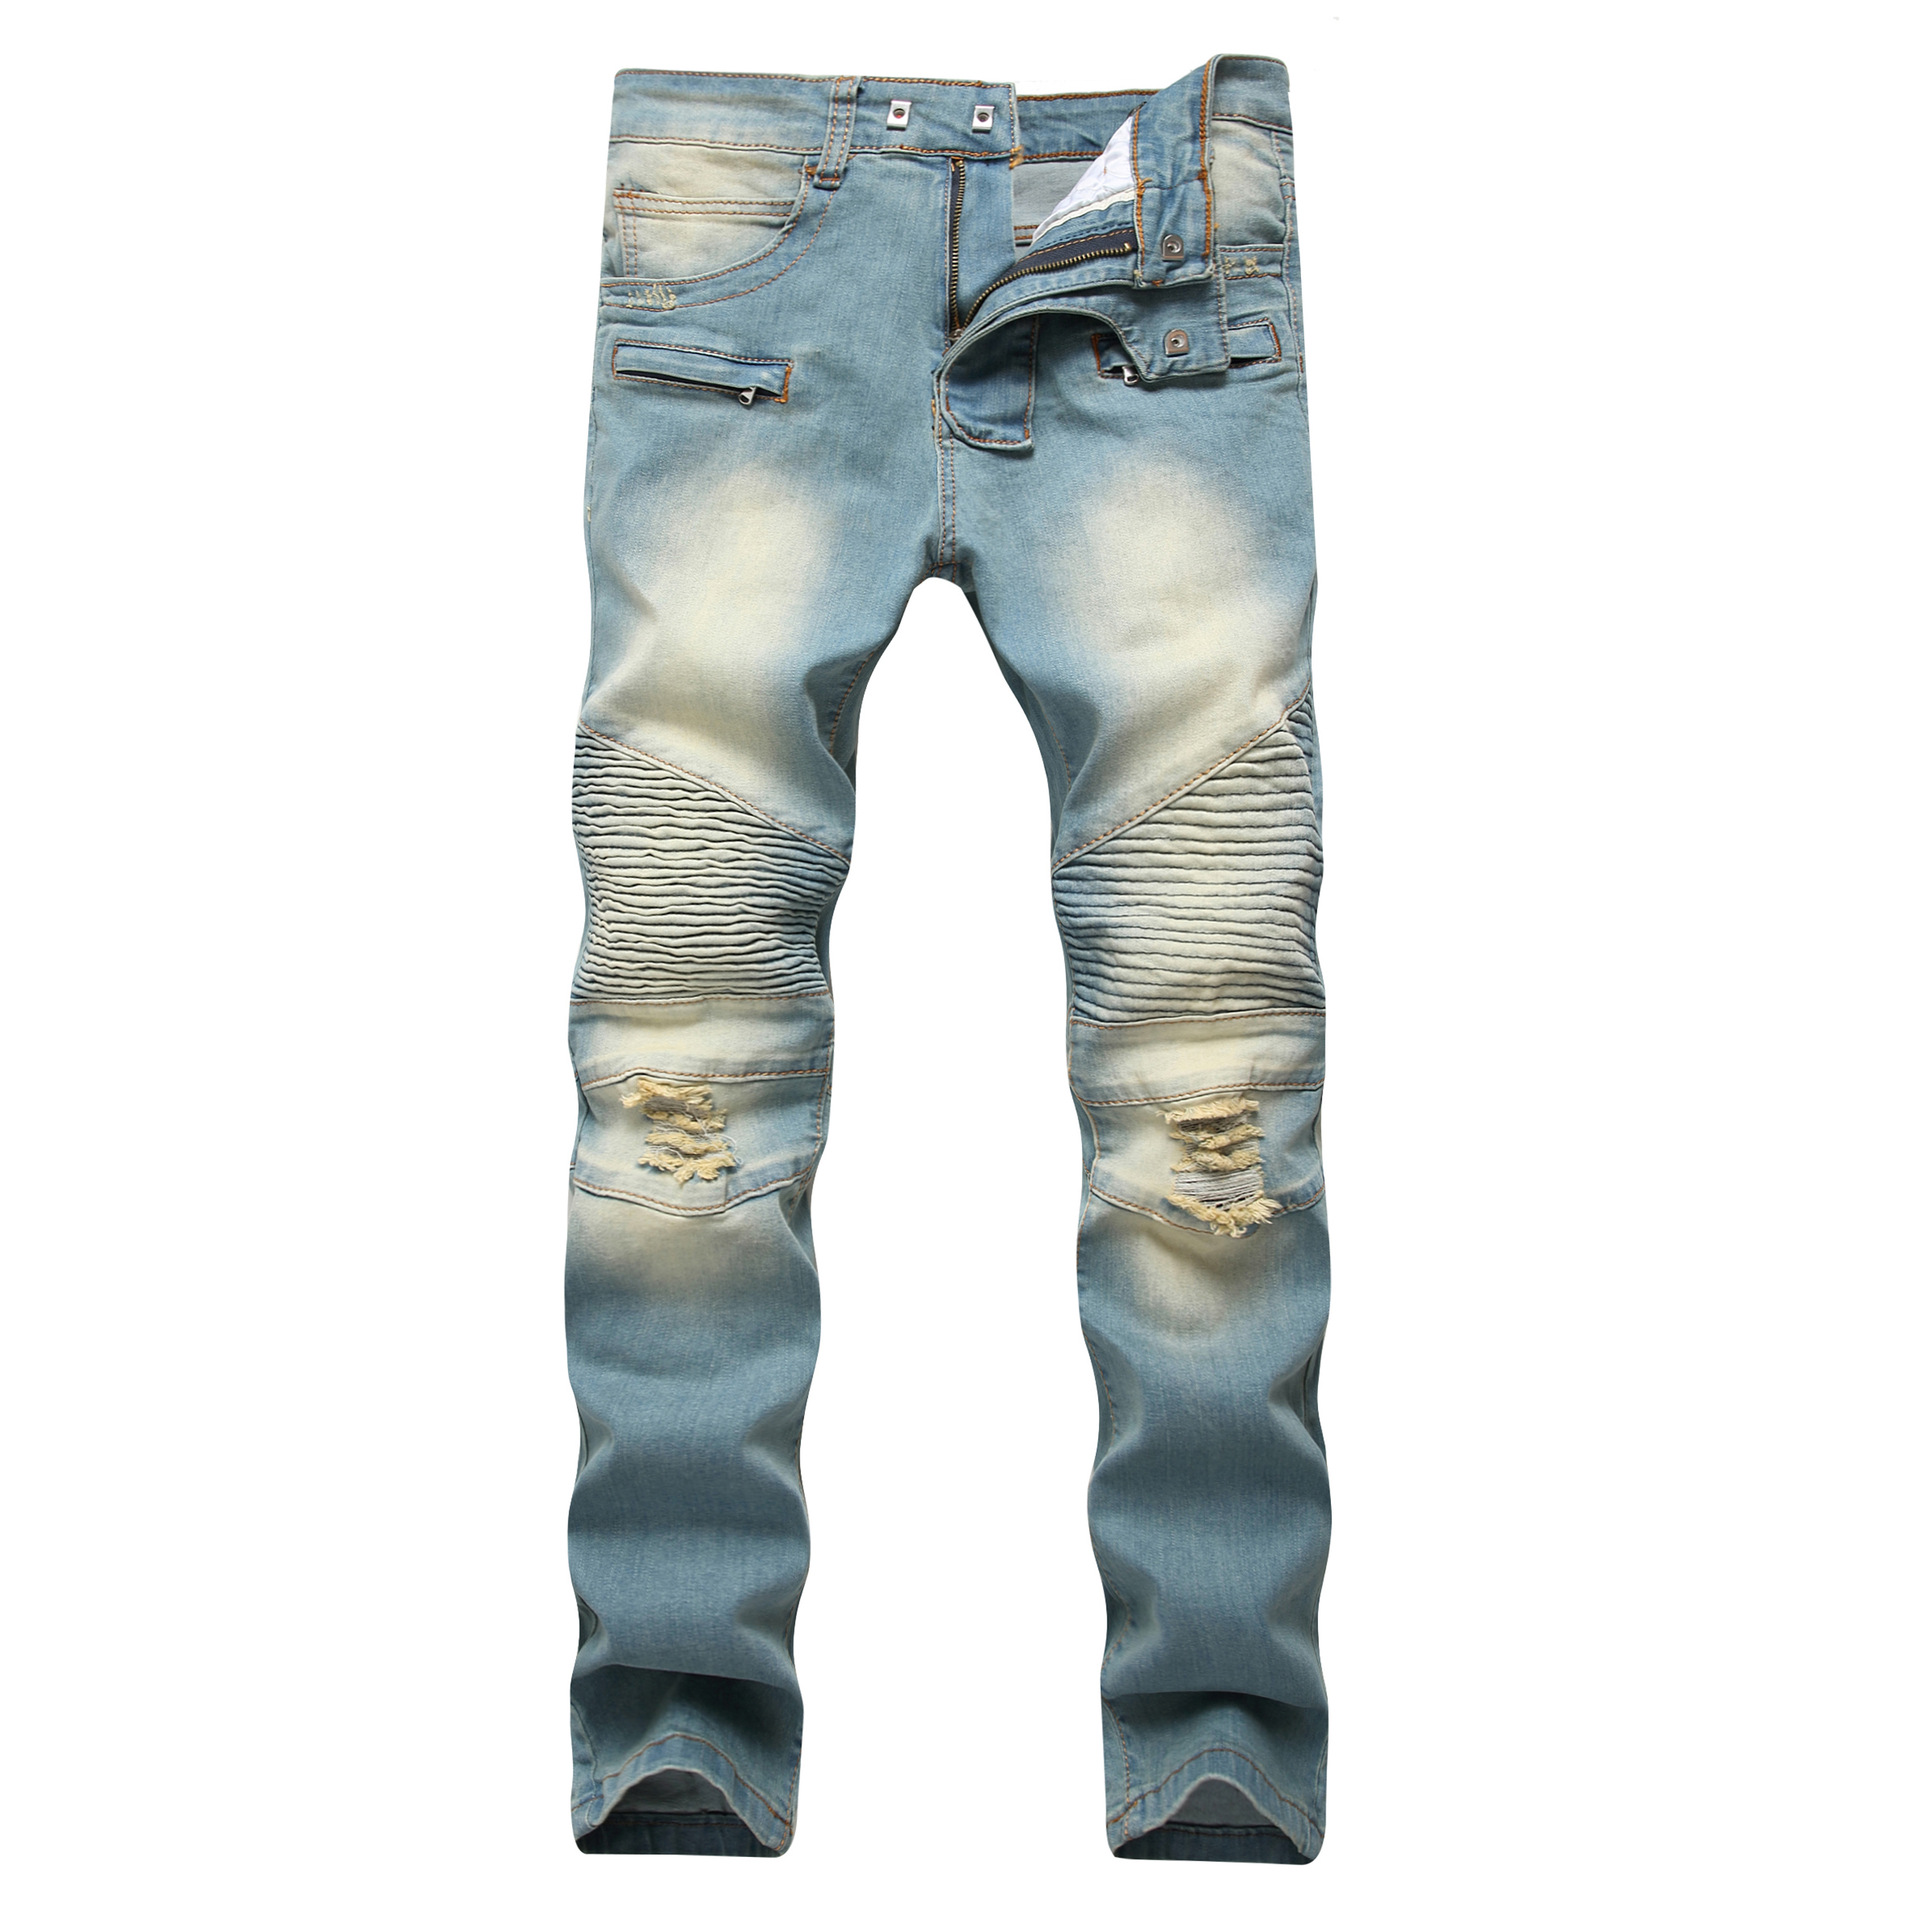 MEN'S WEAR Zipper Decorations Jeans With Holes Drag Yellow Nostalgic Men Europe And America High Street Stretch Trousers